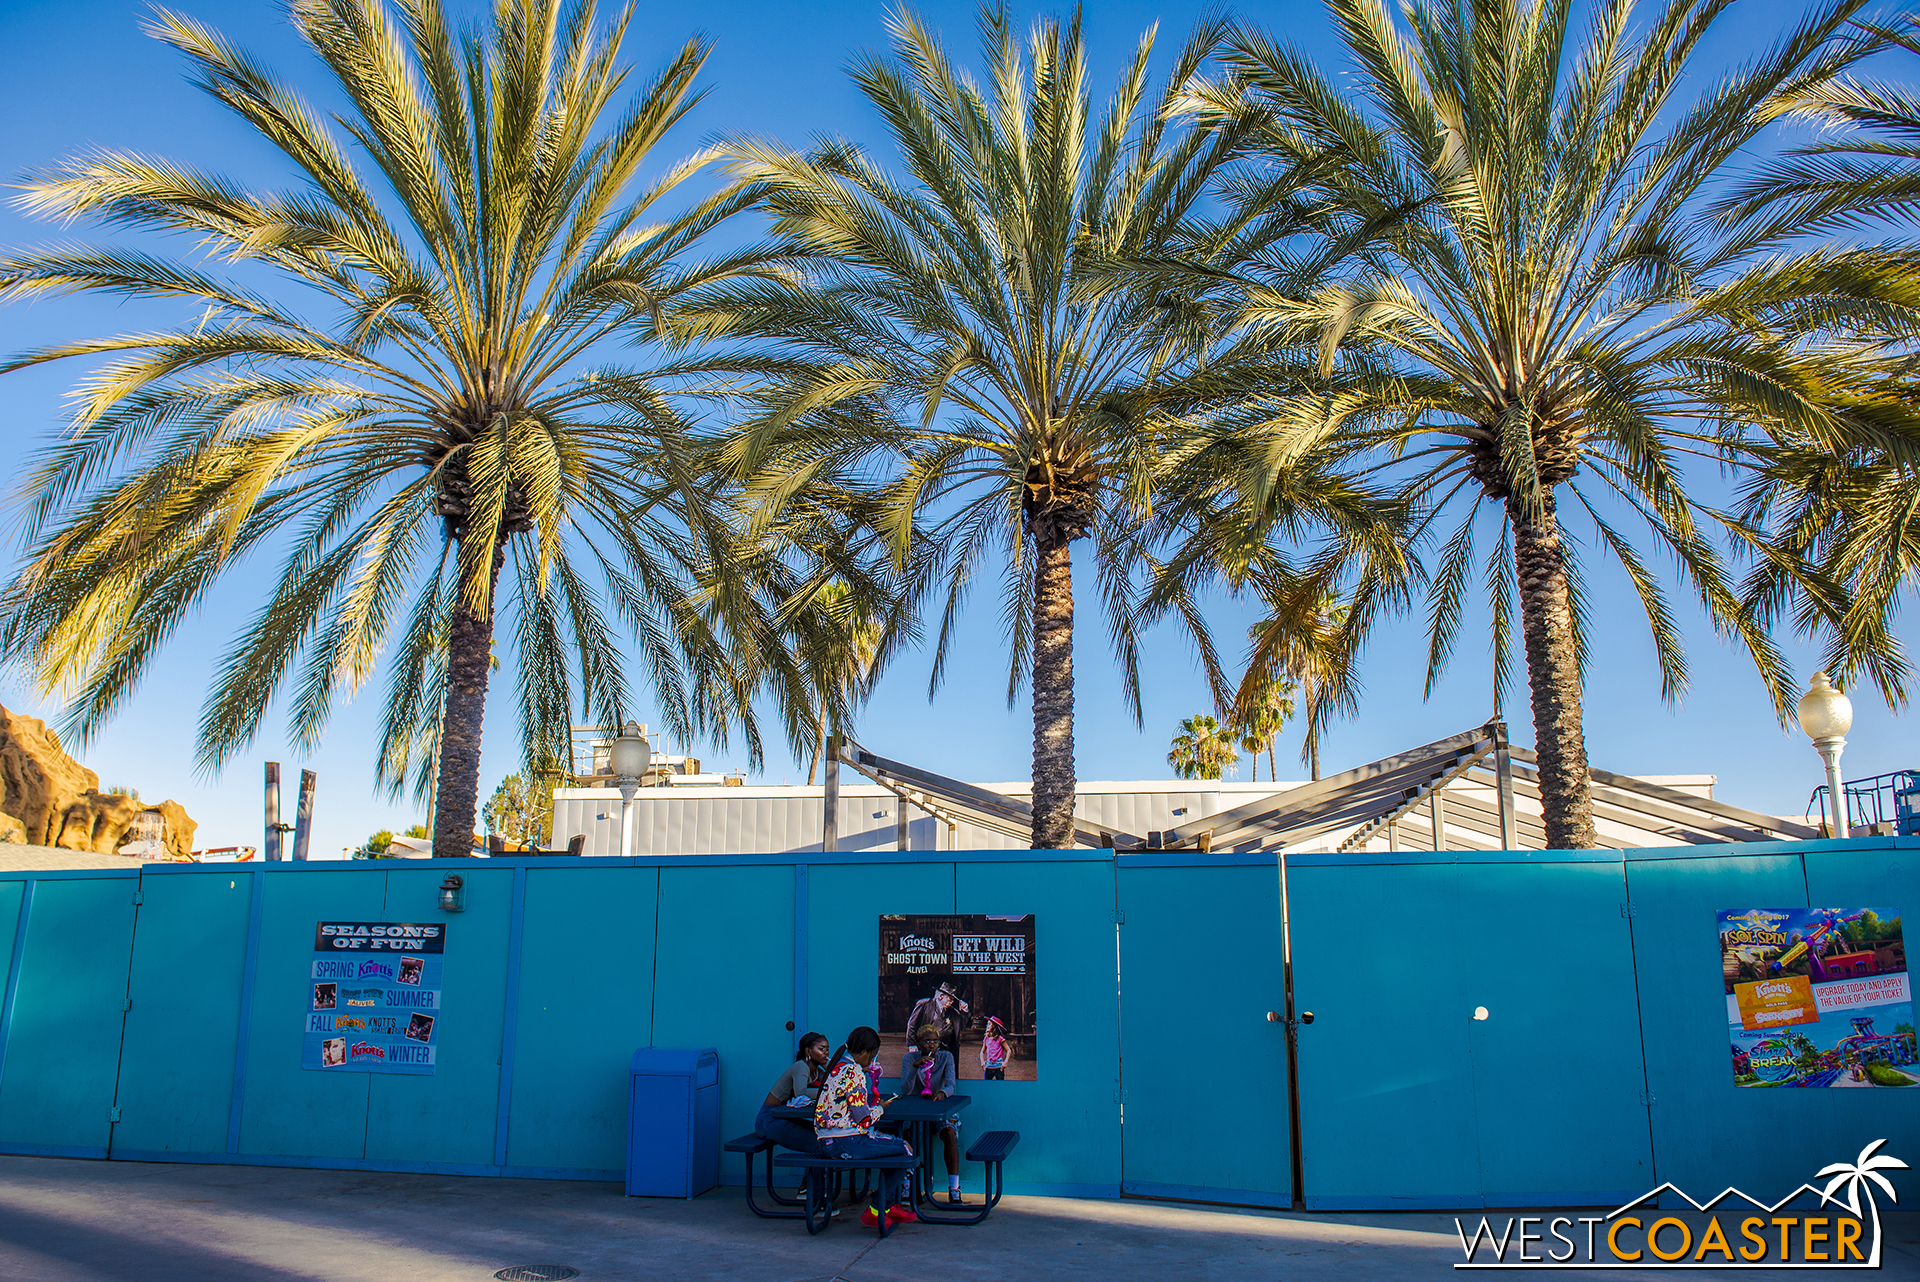 On the side facing Xcelerator, they are building some seating shade structures.